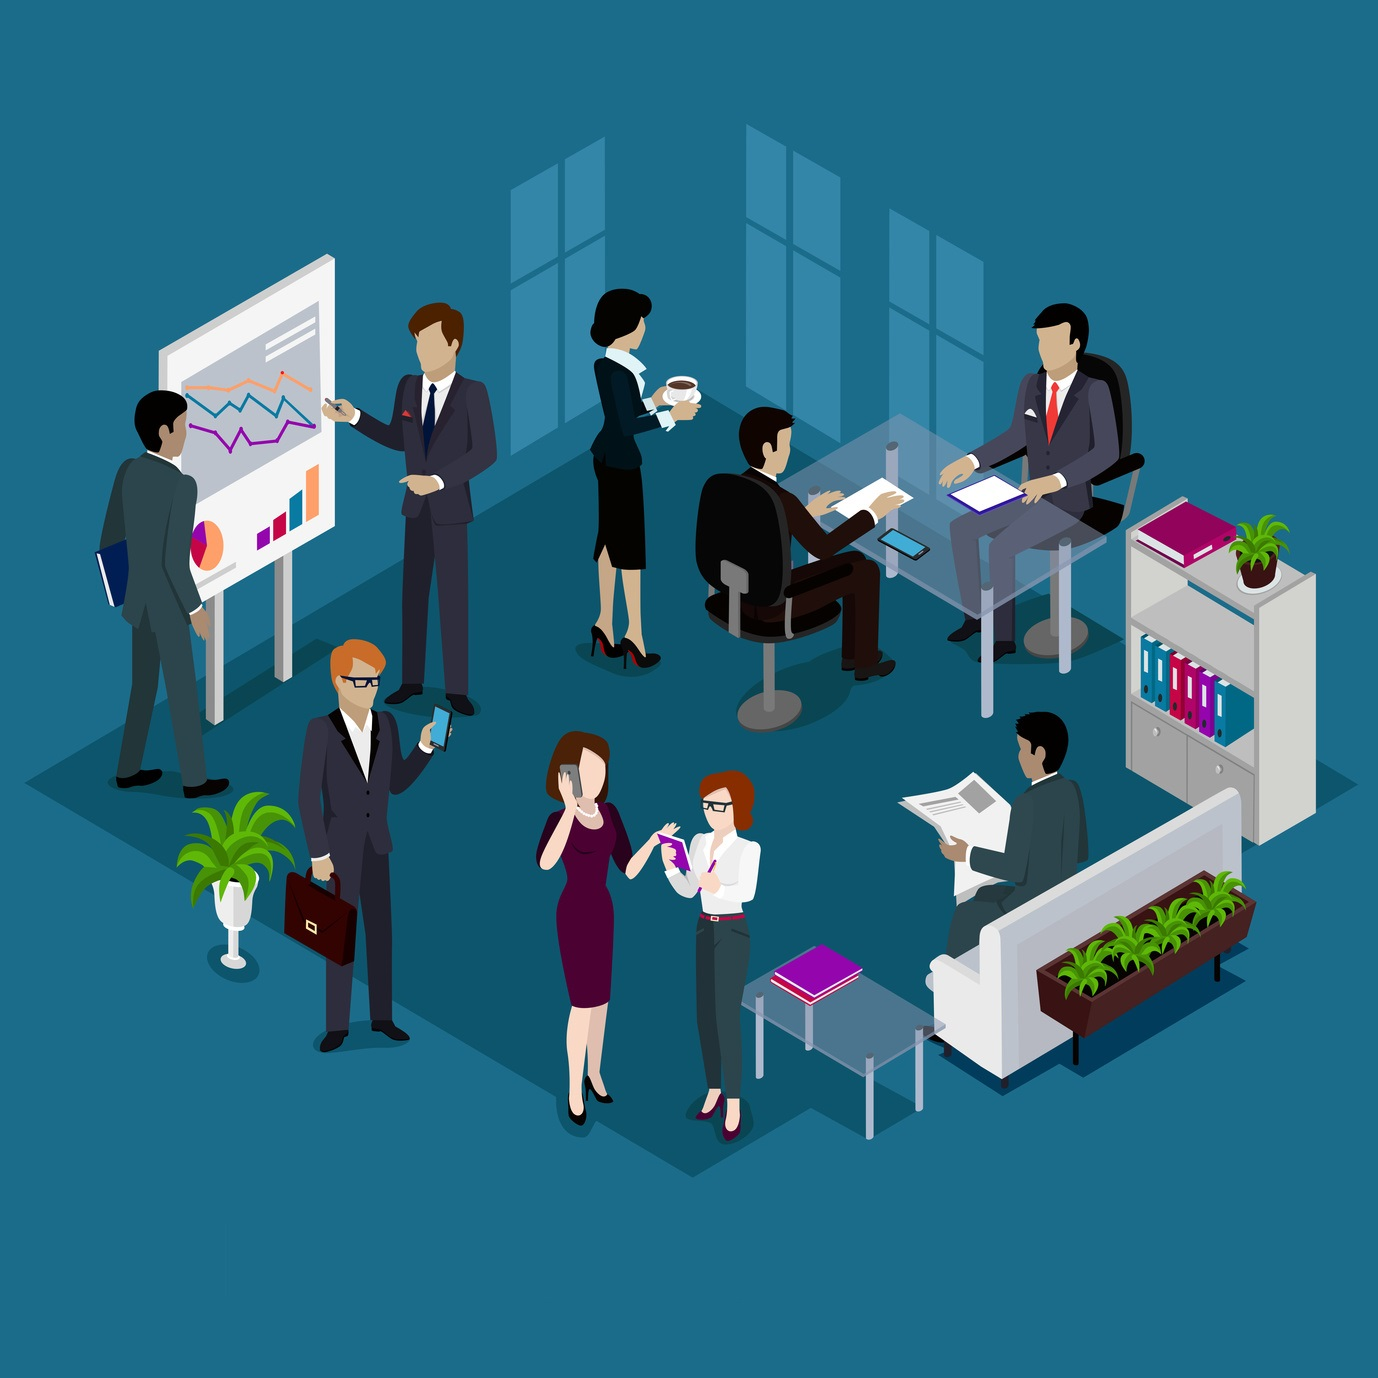 Business Strategies for Companies to Distinguish Themselves from Competitors